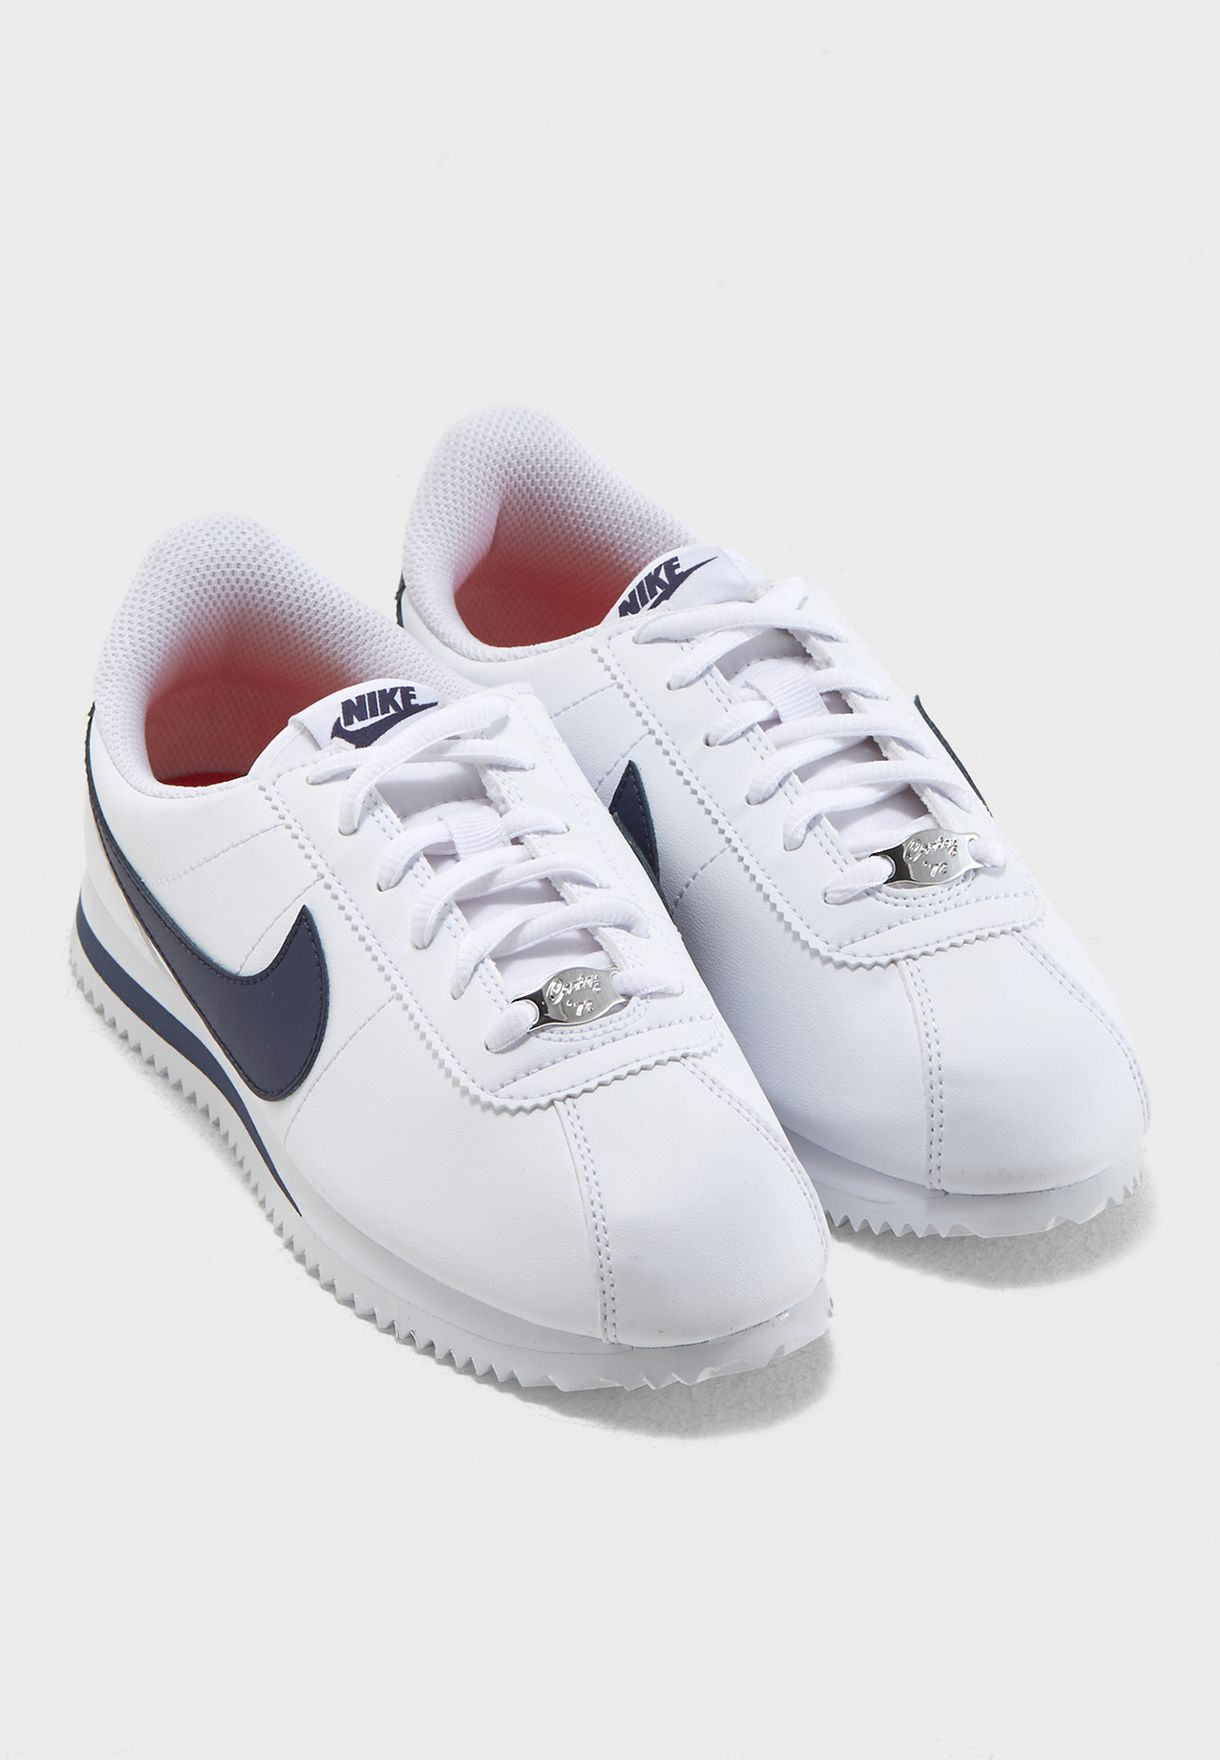 Nike Basic For Uae Cortez In Shop Sl 904764 106 Kids Youth White qATIwI